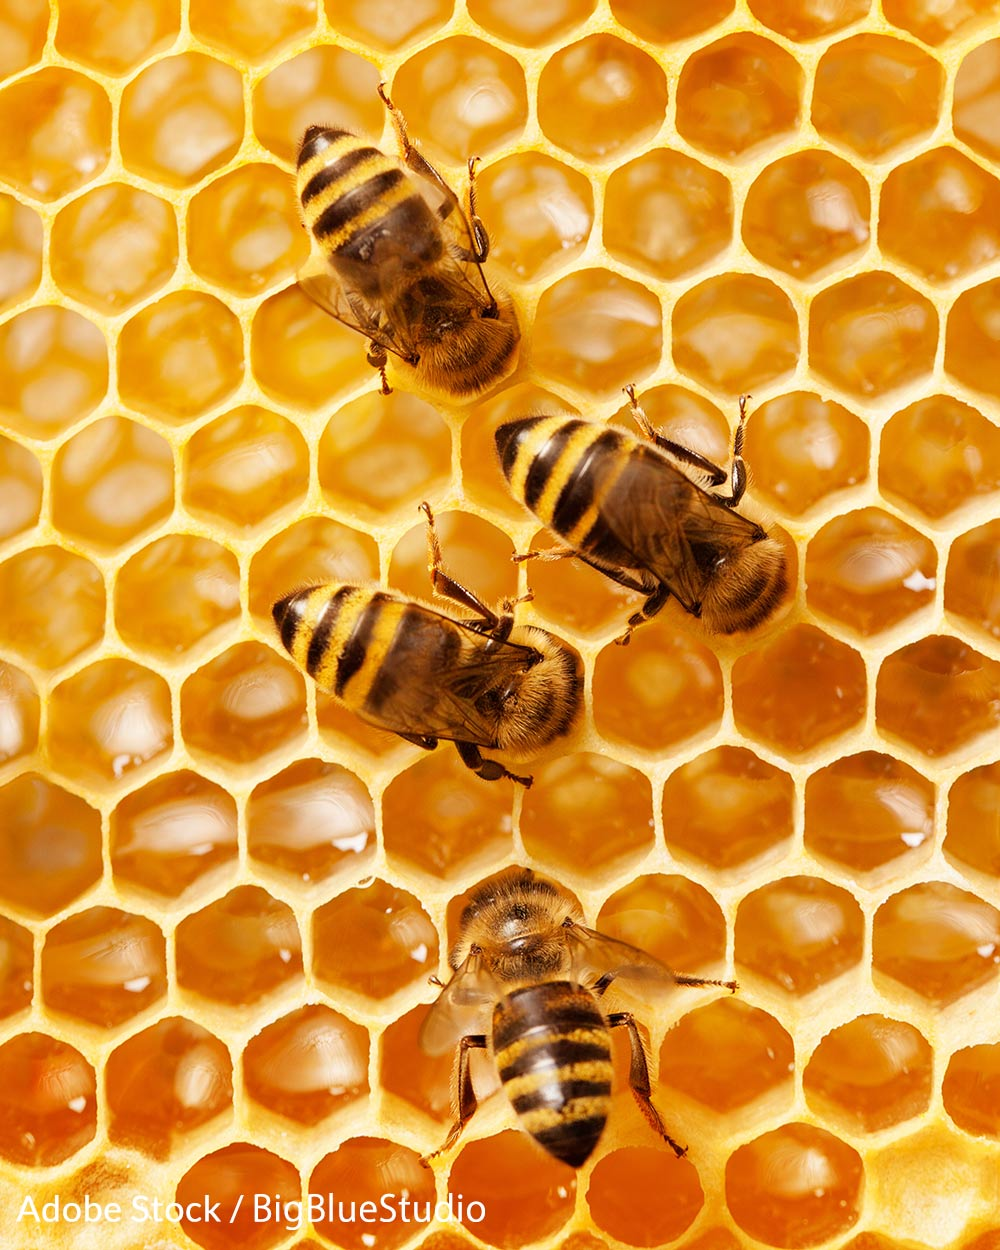 The EPA has released its own guidance on limiting the use of neonicotinoid pesticides around honeybees.